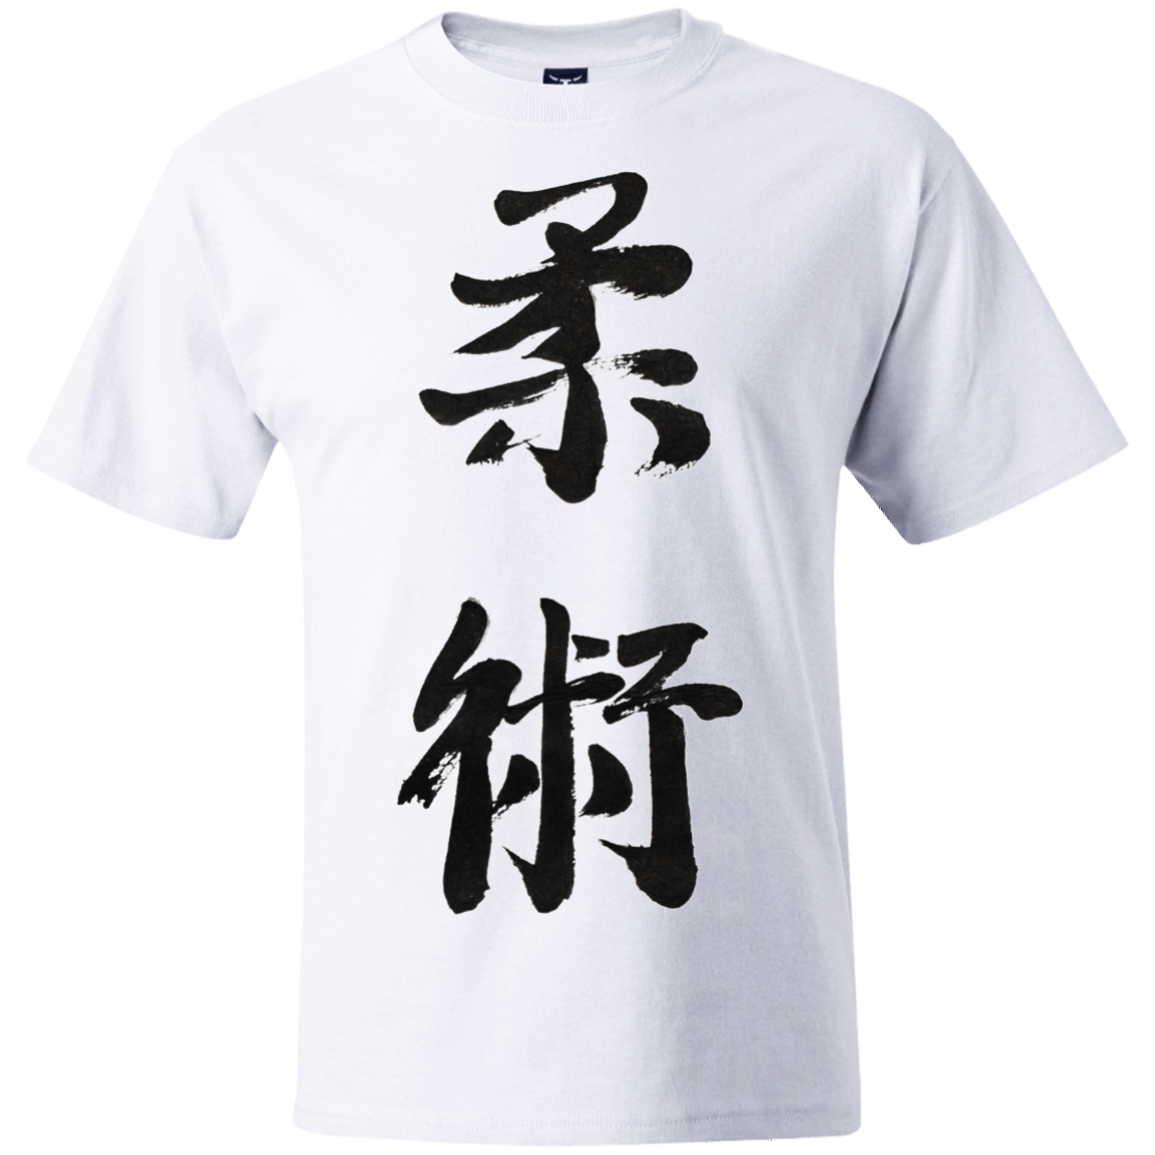 Brushwork Jujutsu / Jiu-jitsu Kanji (Black) T-Shirt - Martial Arts, Brazilian Jiujitsu, Karate, Muay Thai Shirts